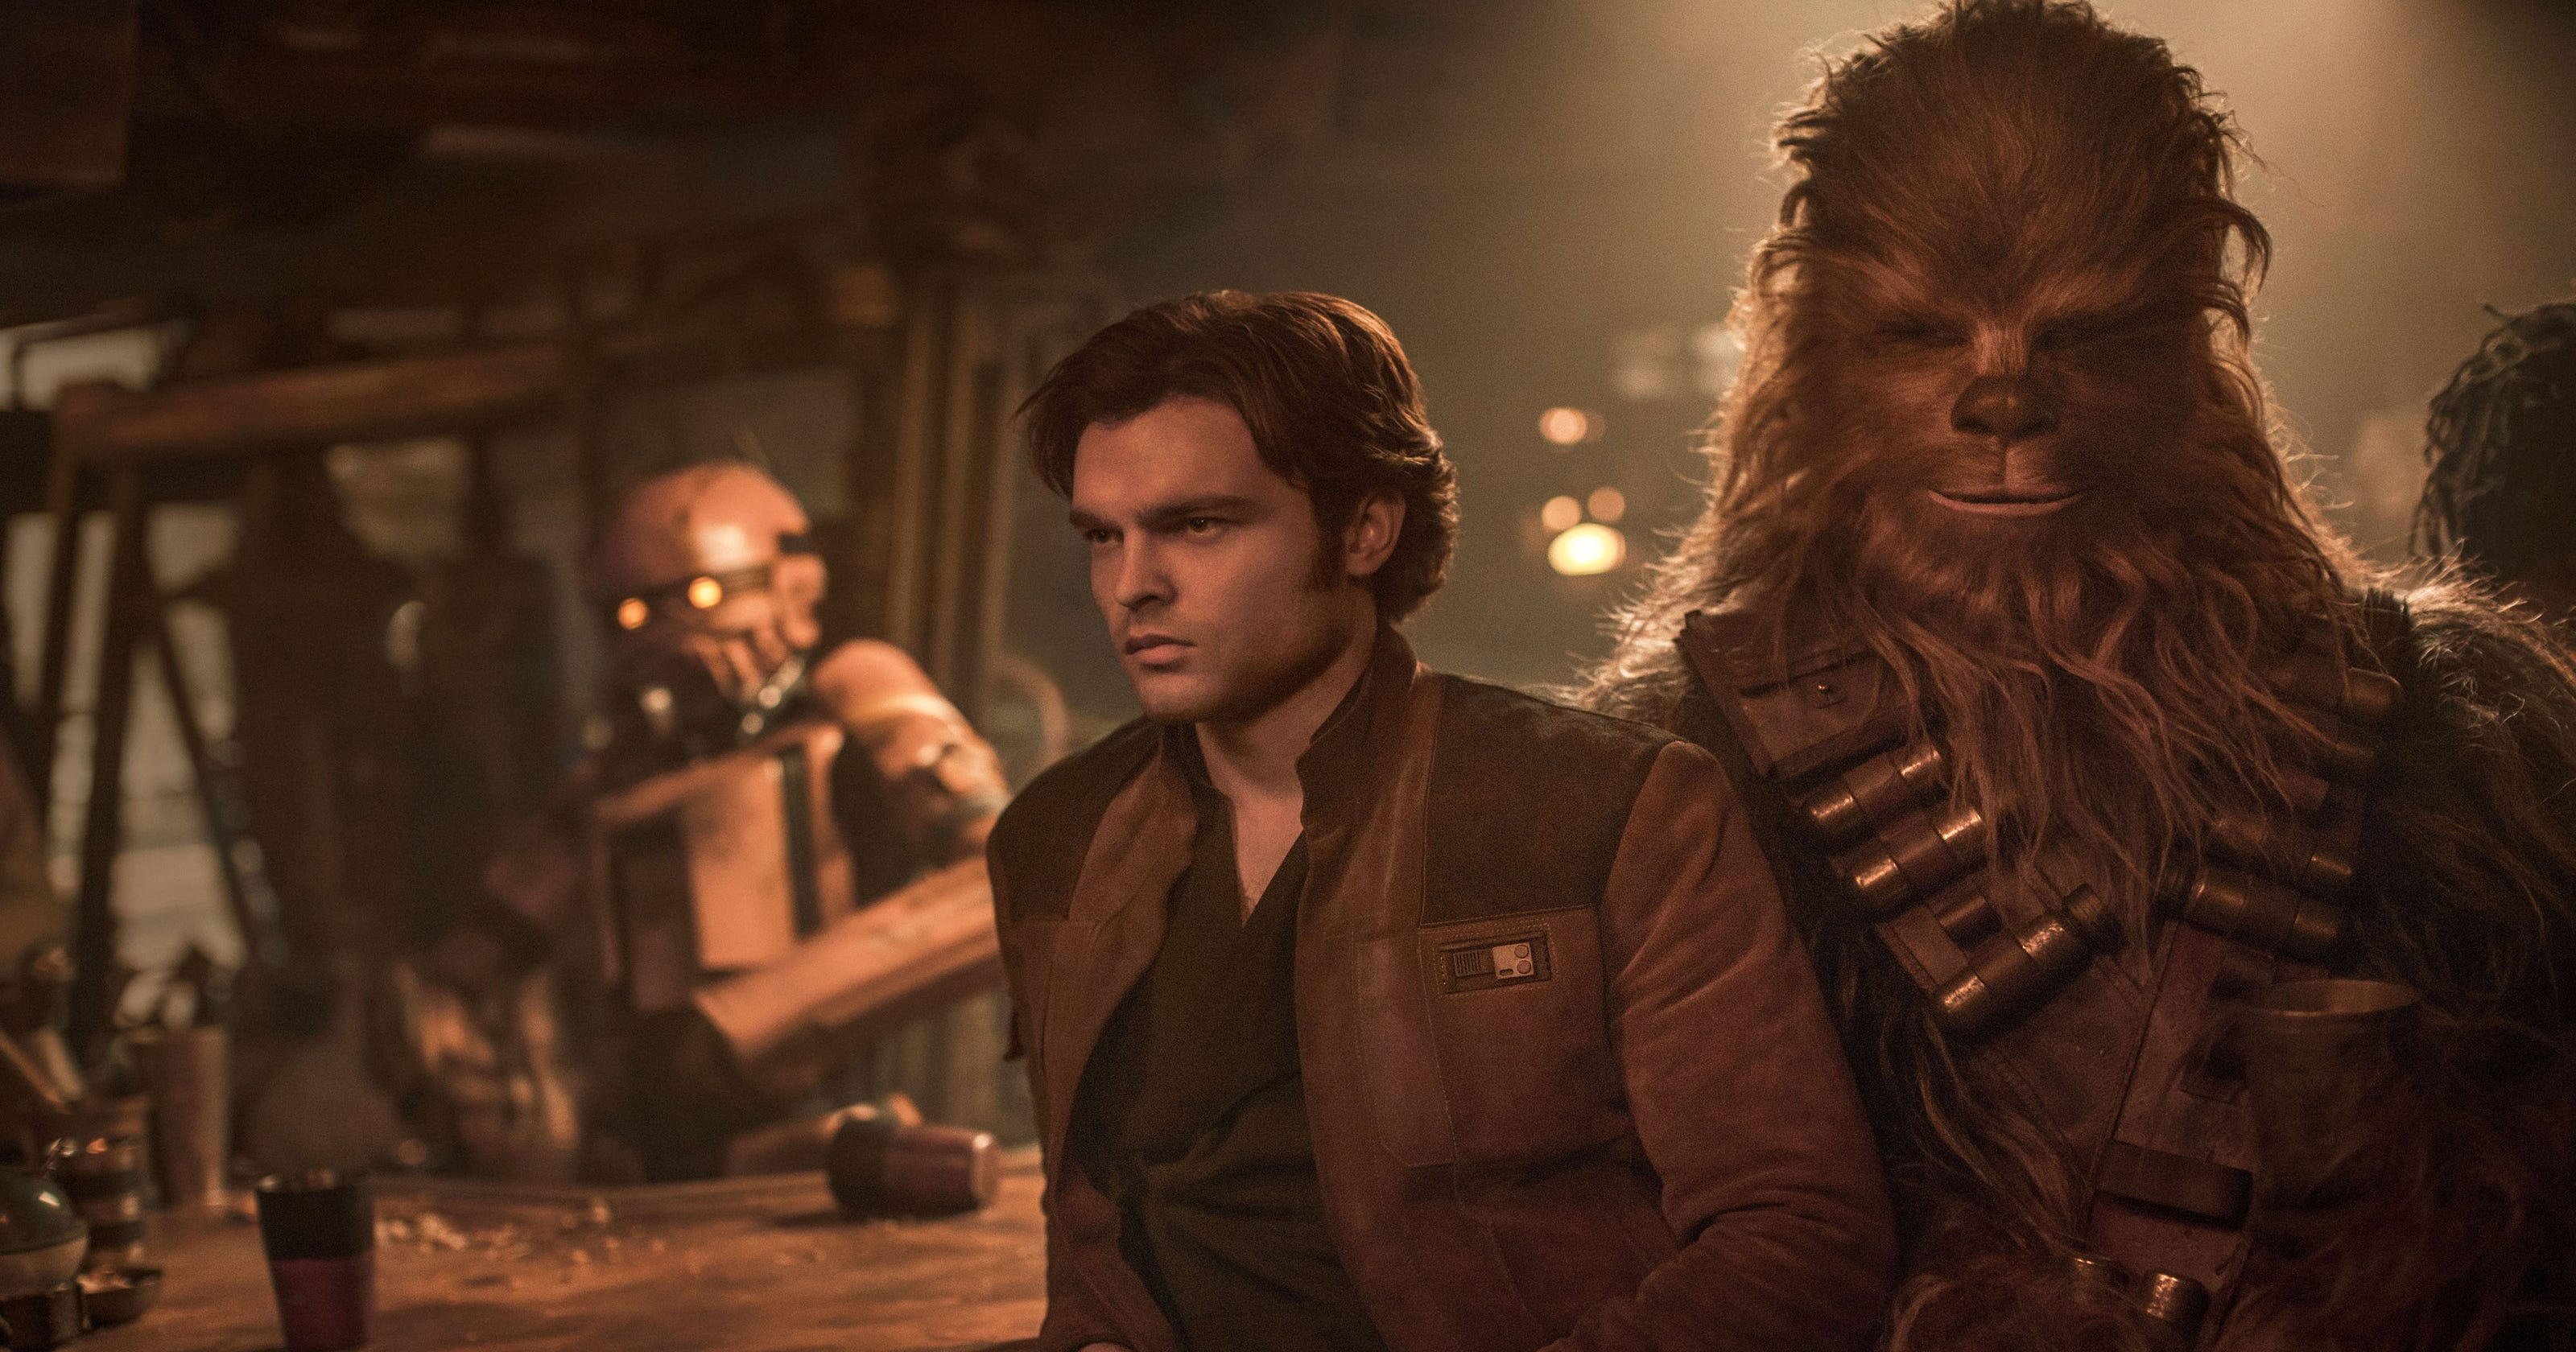 Solo': Decoding the big reveals of the new 'Star Wars